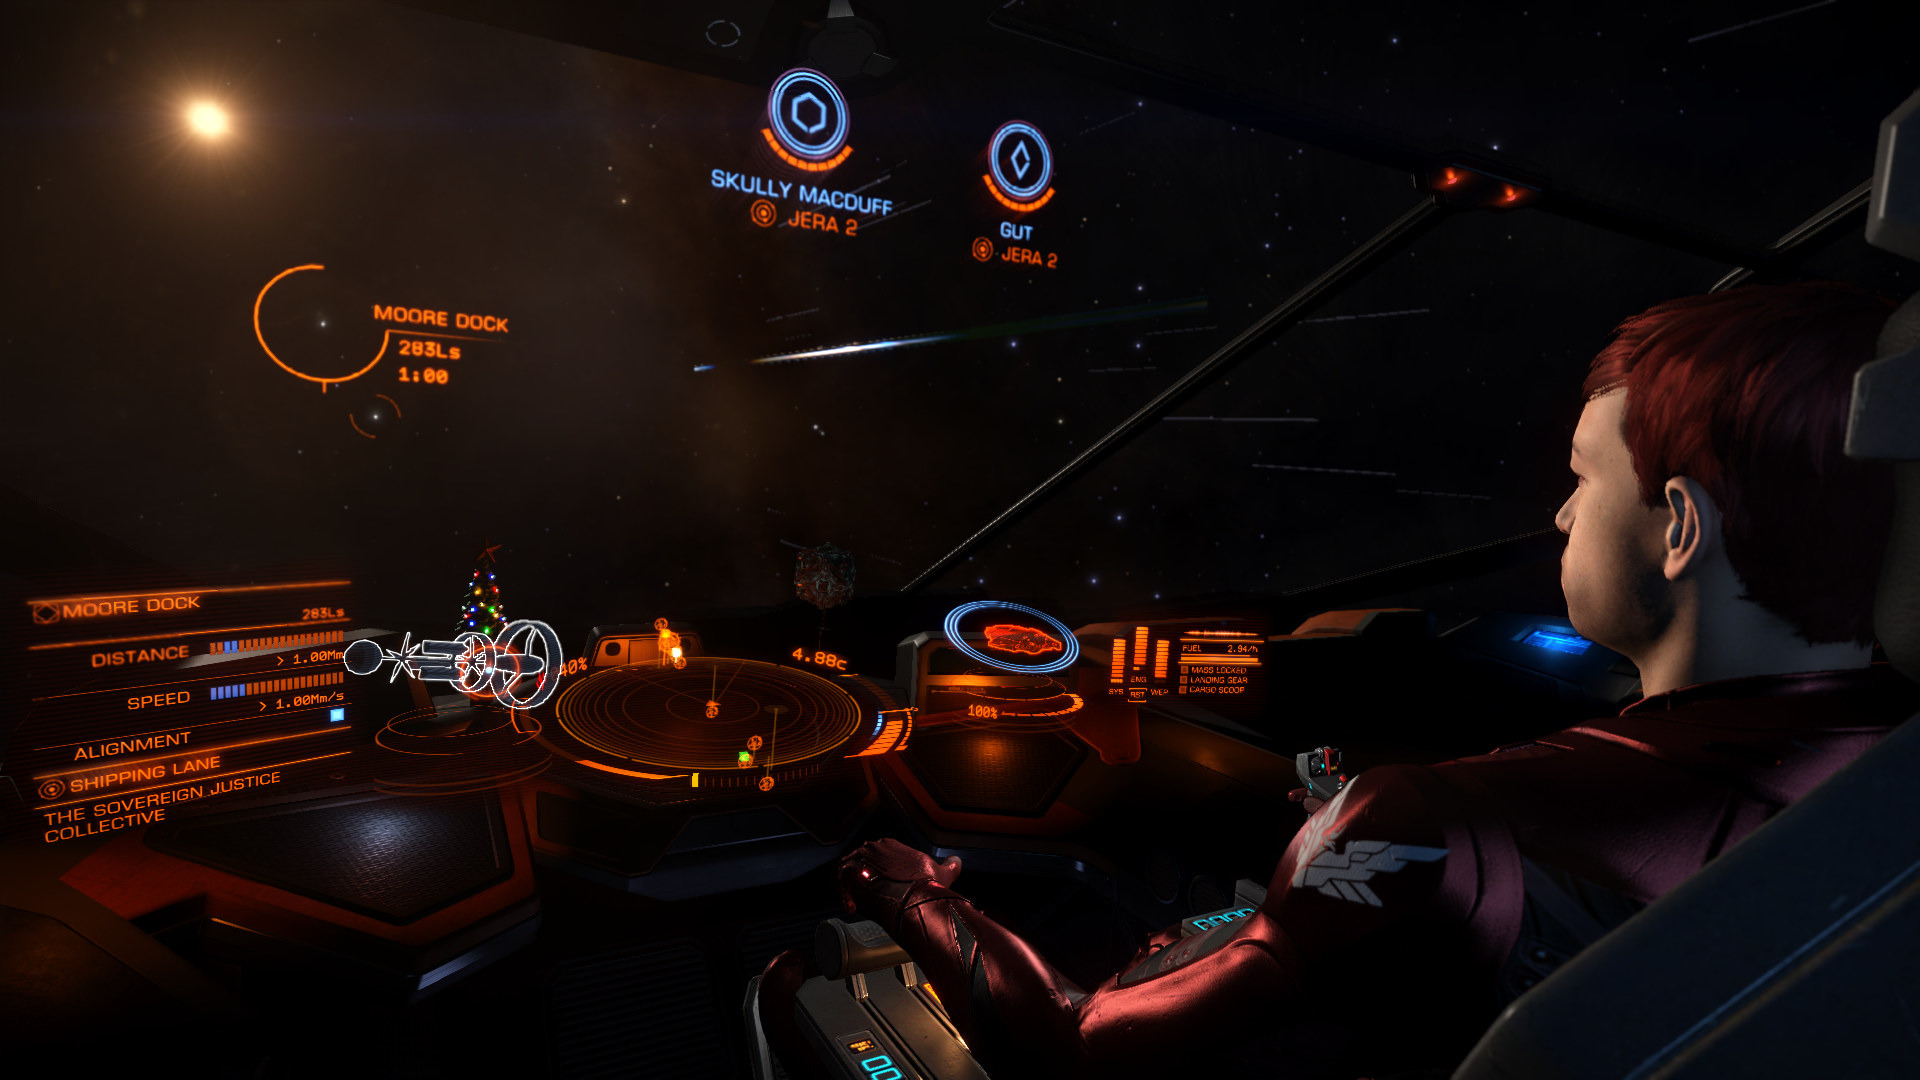 Returning from High Combat Zone in the Jera system ...